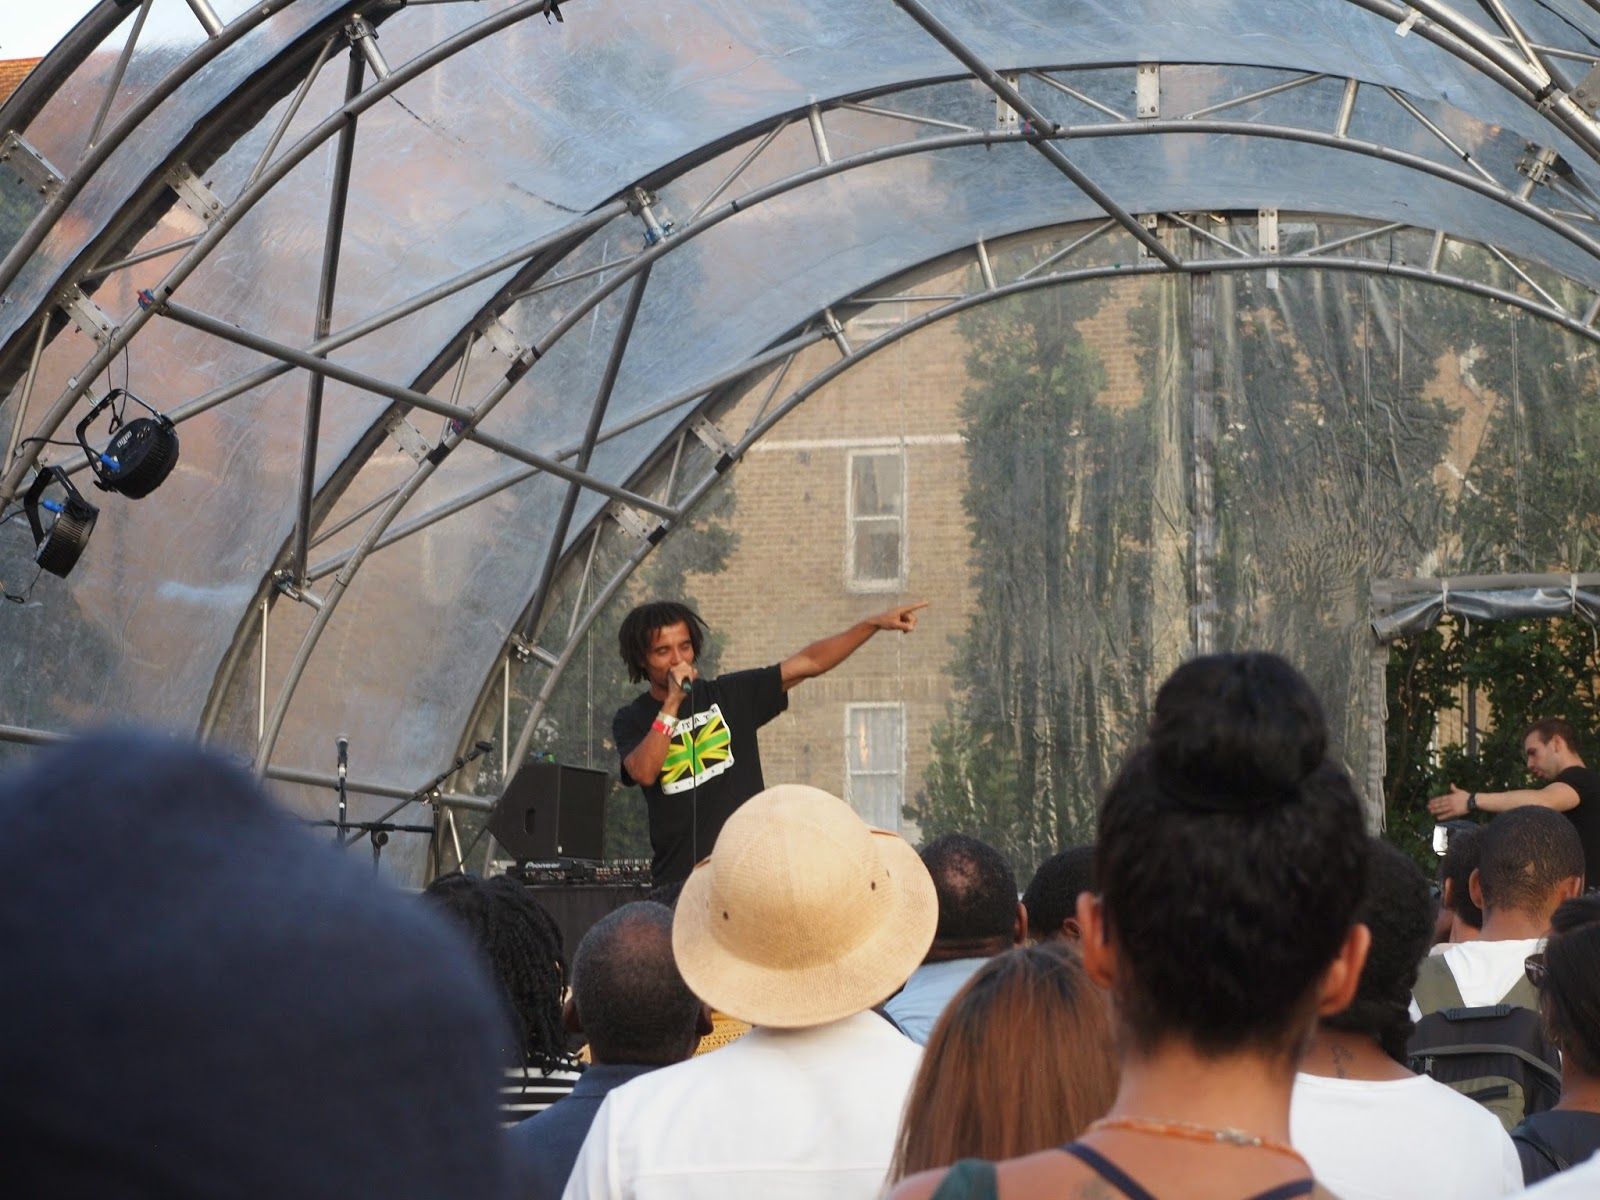 High-velocity spoken word artist/rapper Akala opens minds and hearts at the Black Cultural Archives launch event, Windrush Square, Brixton,